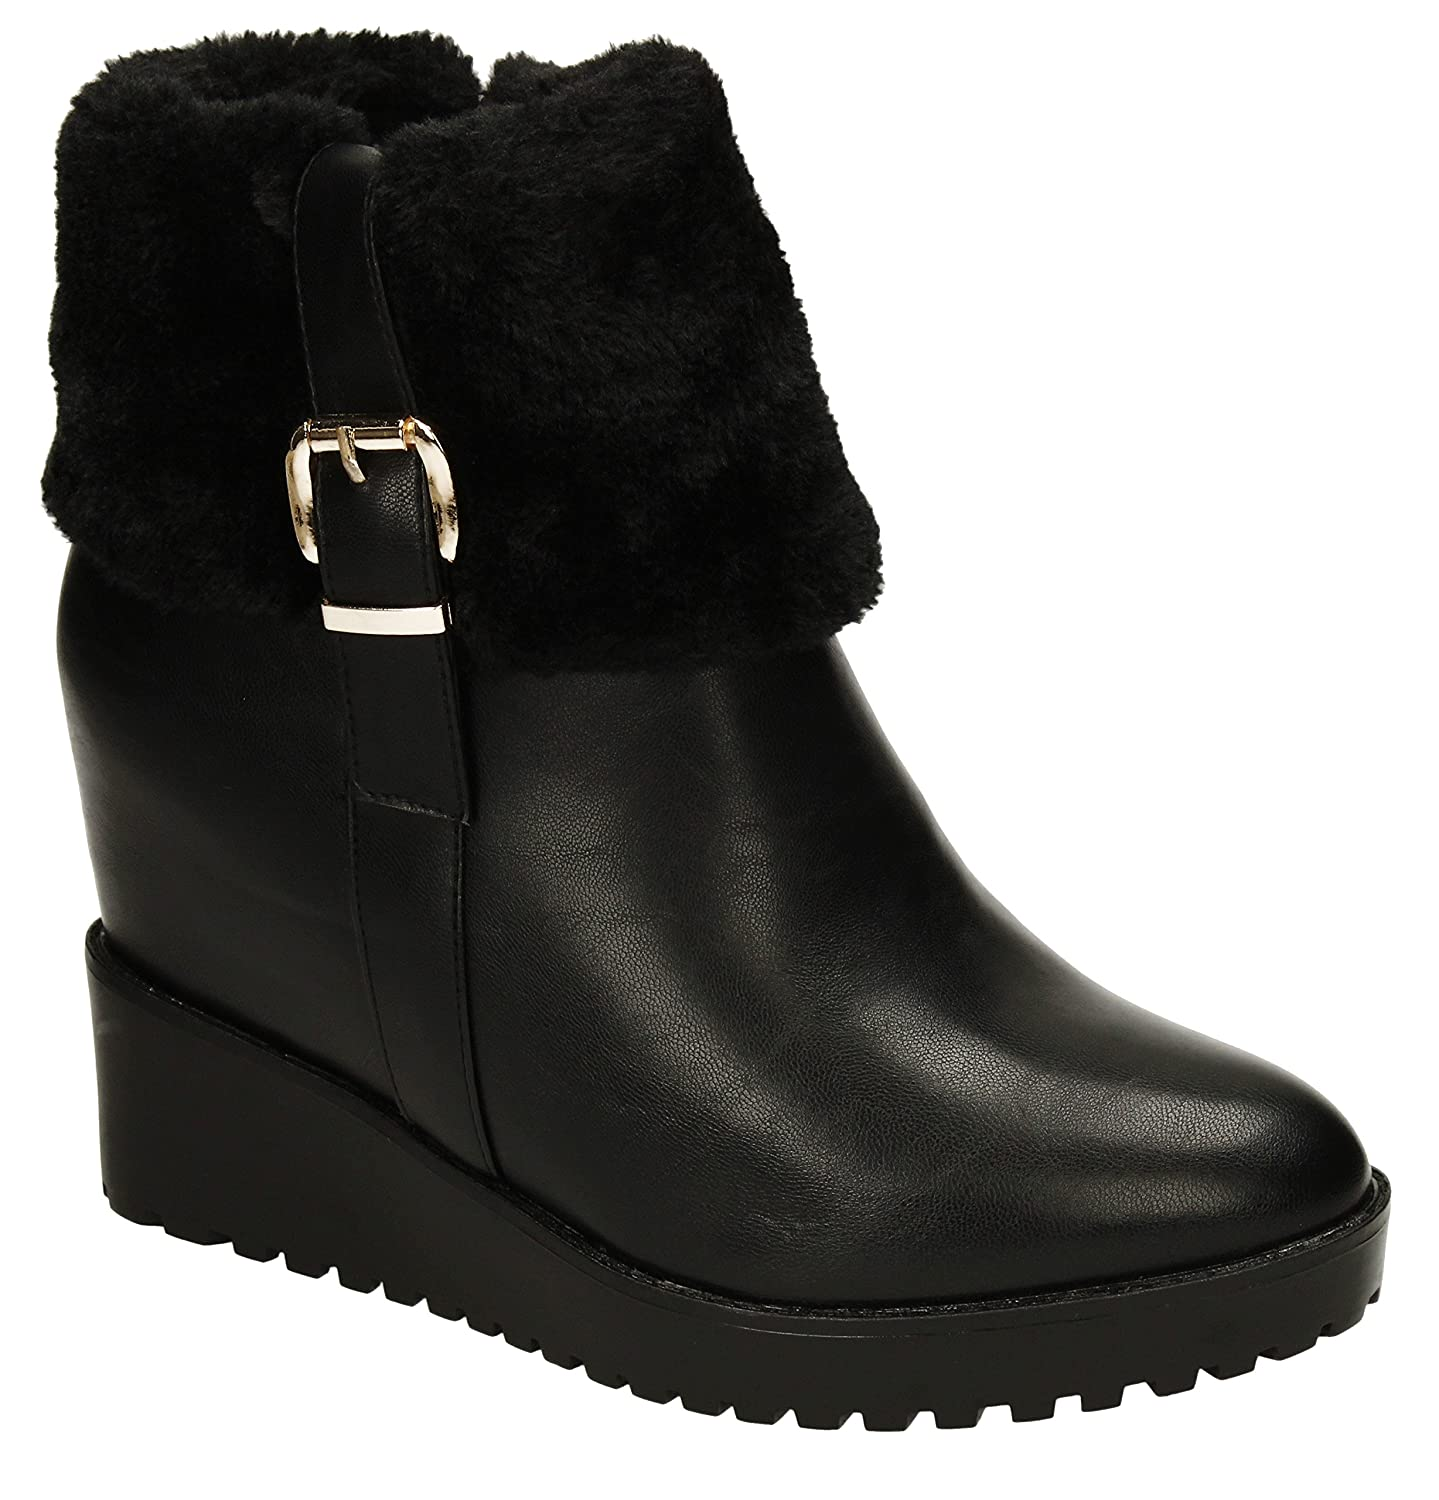 Becky Womens Black Wedge Boots Collar Fur Lined Winter Warm Ladies ...